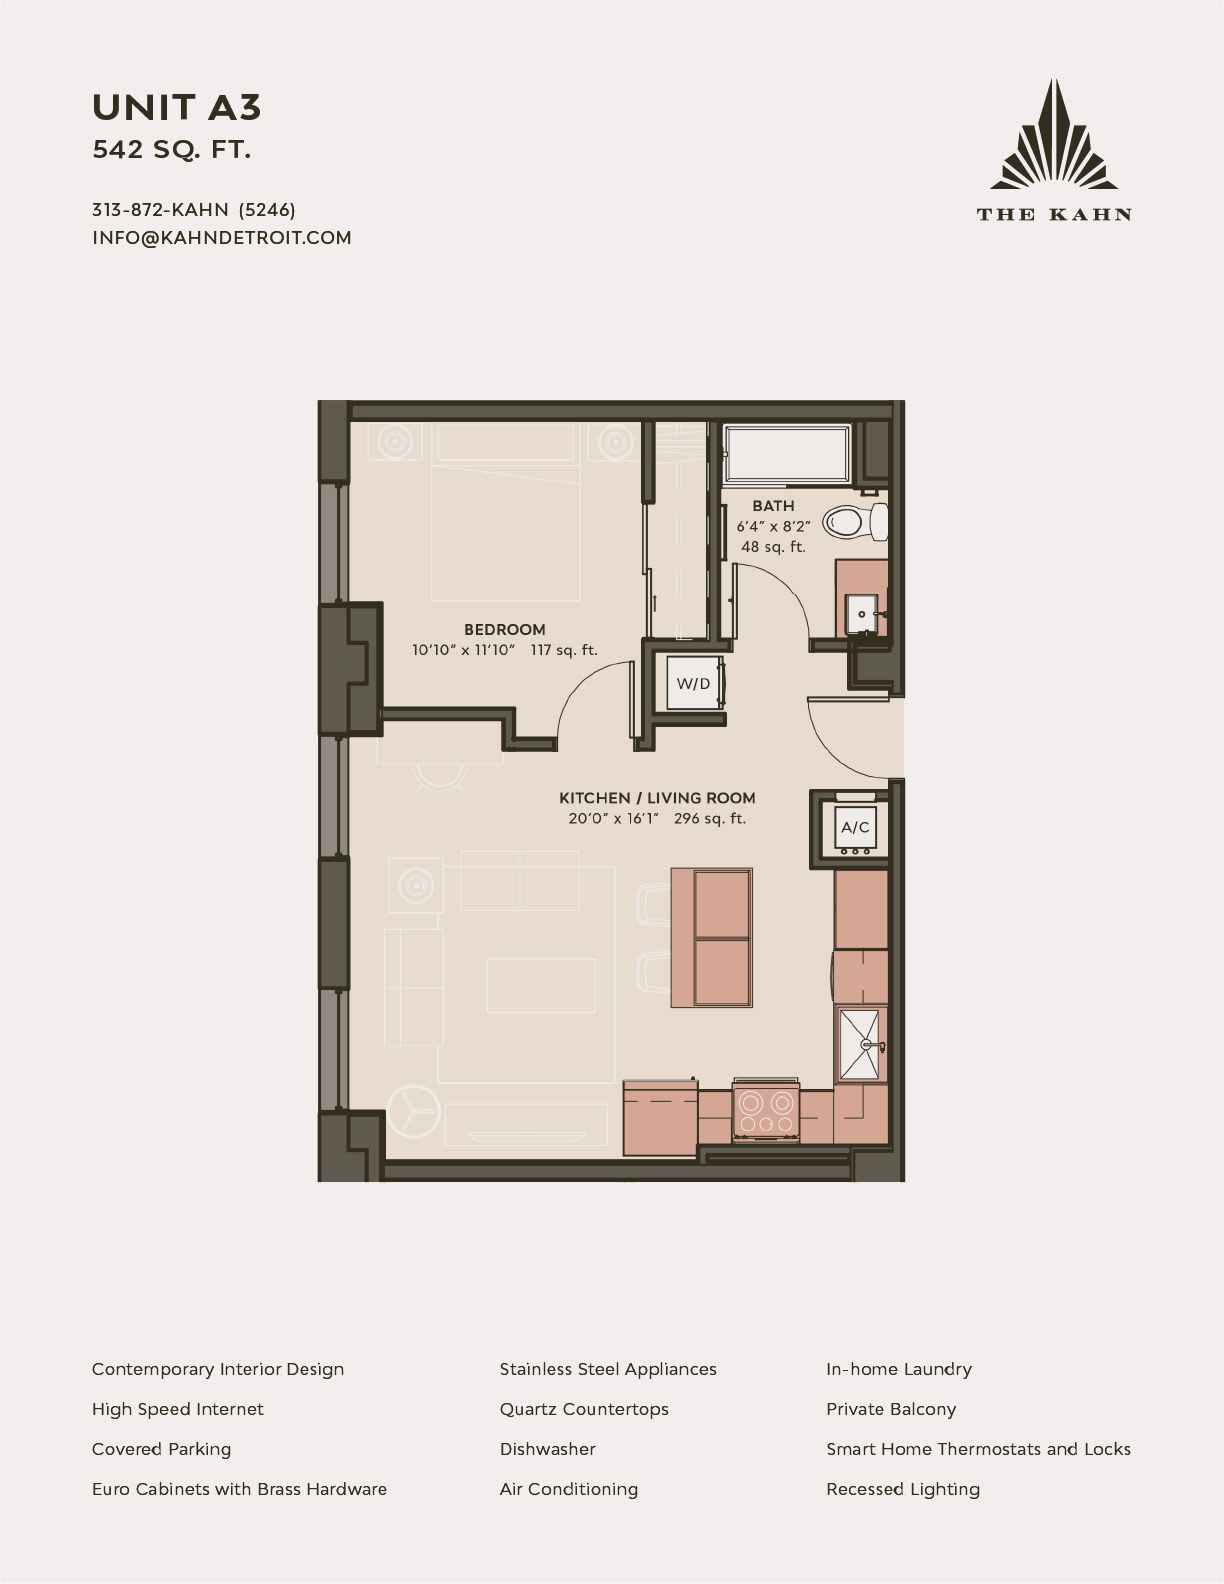 A3 floor plan image at The Kahn in Detroit, Michigan